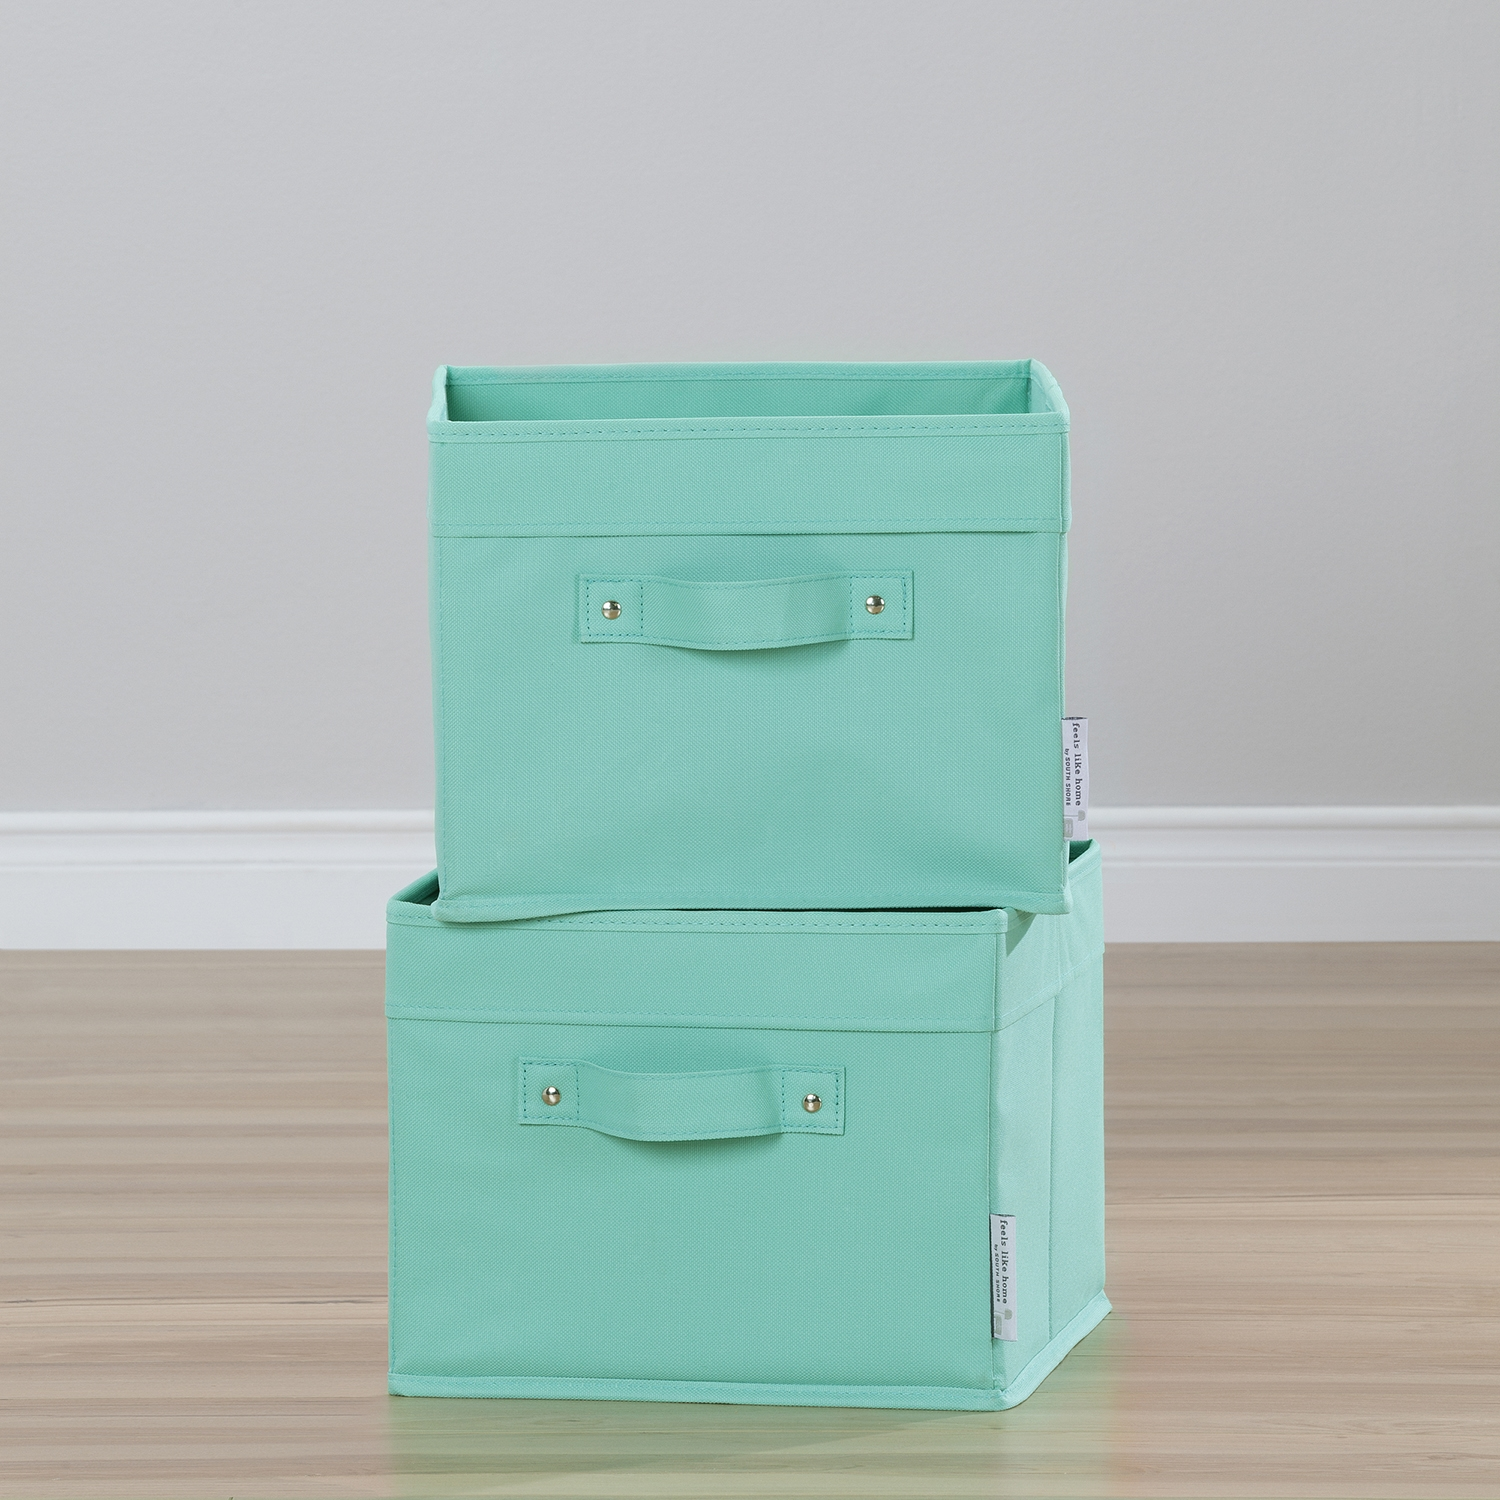 Storit 2 Pack Canvas Basket - Turquoise - SS-100032